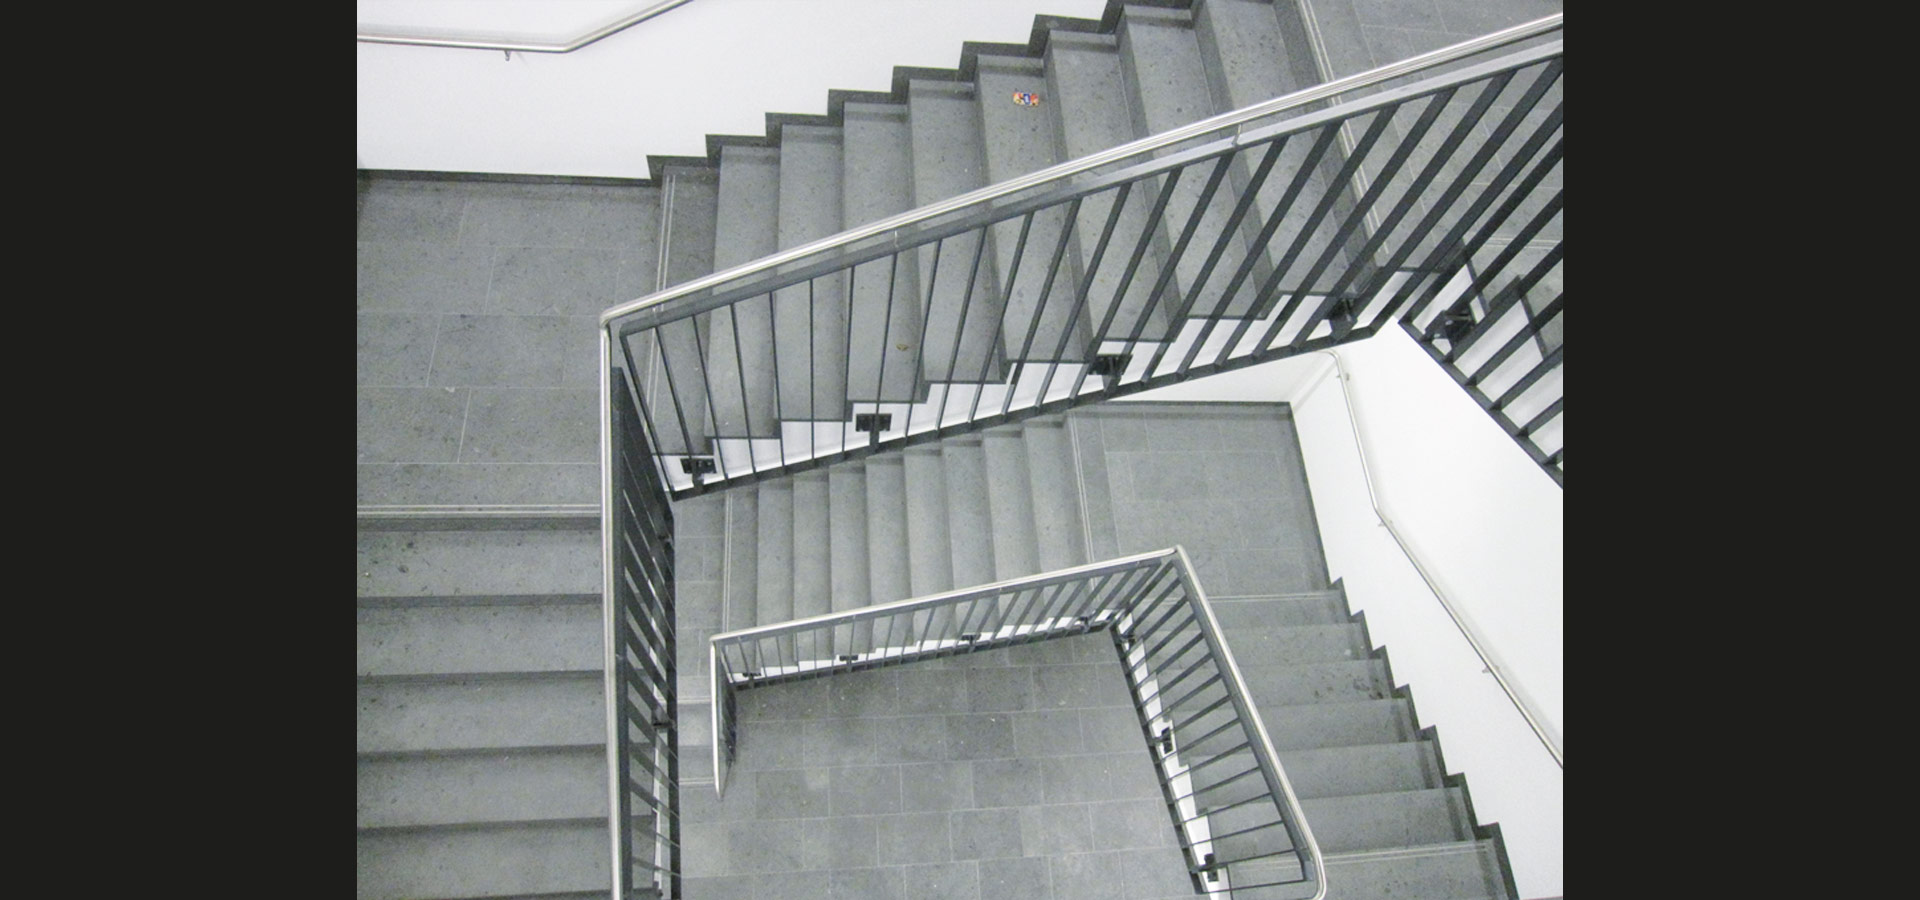 Luxsystem luminaires for leopoldina staircase lighting high luminous efficiency corridor lighting